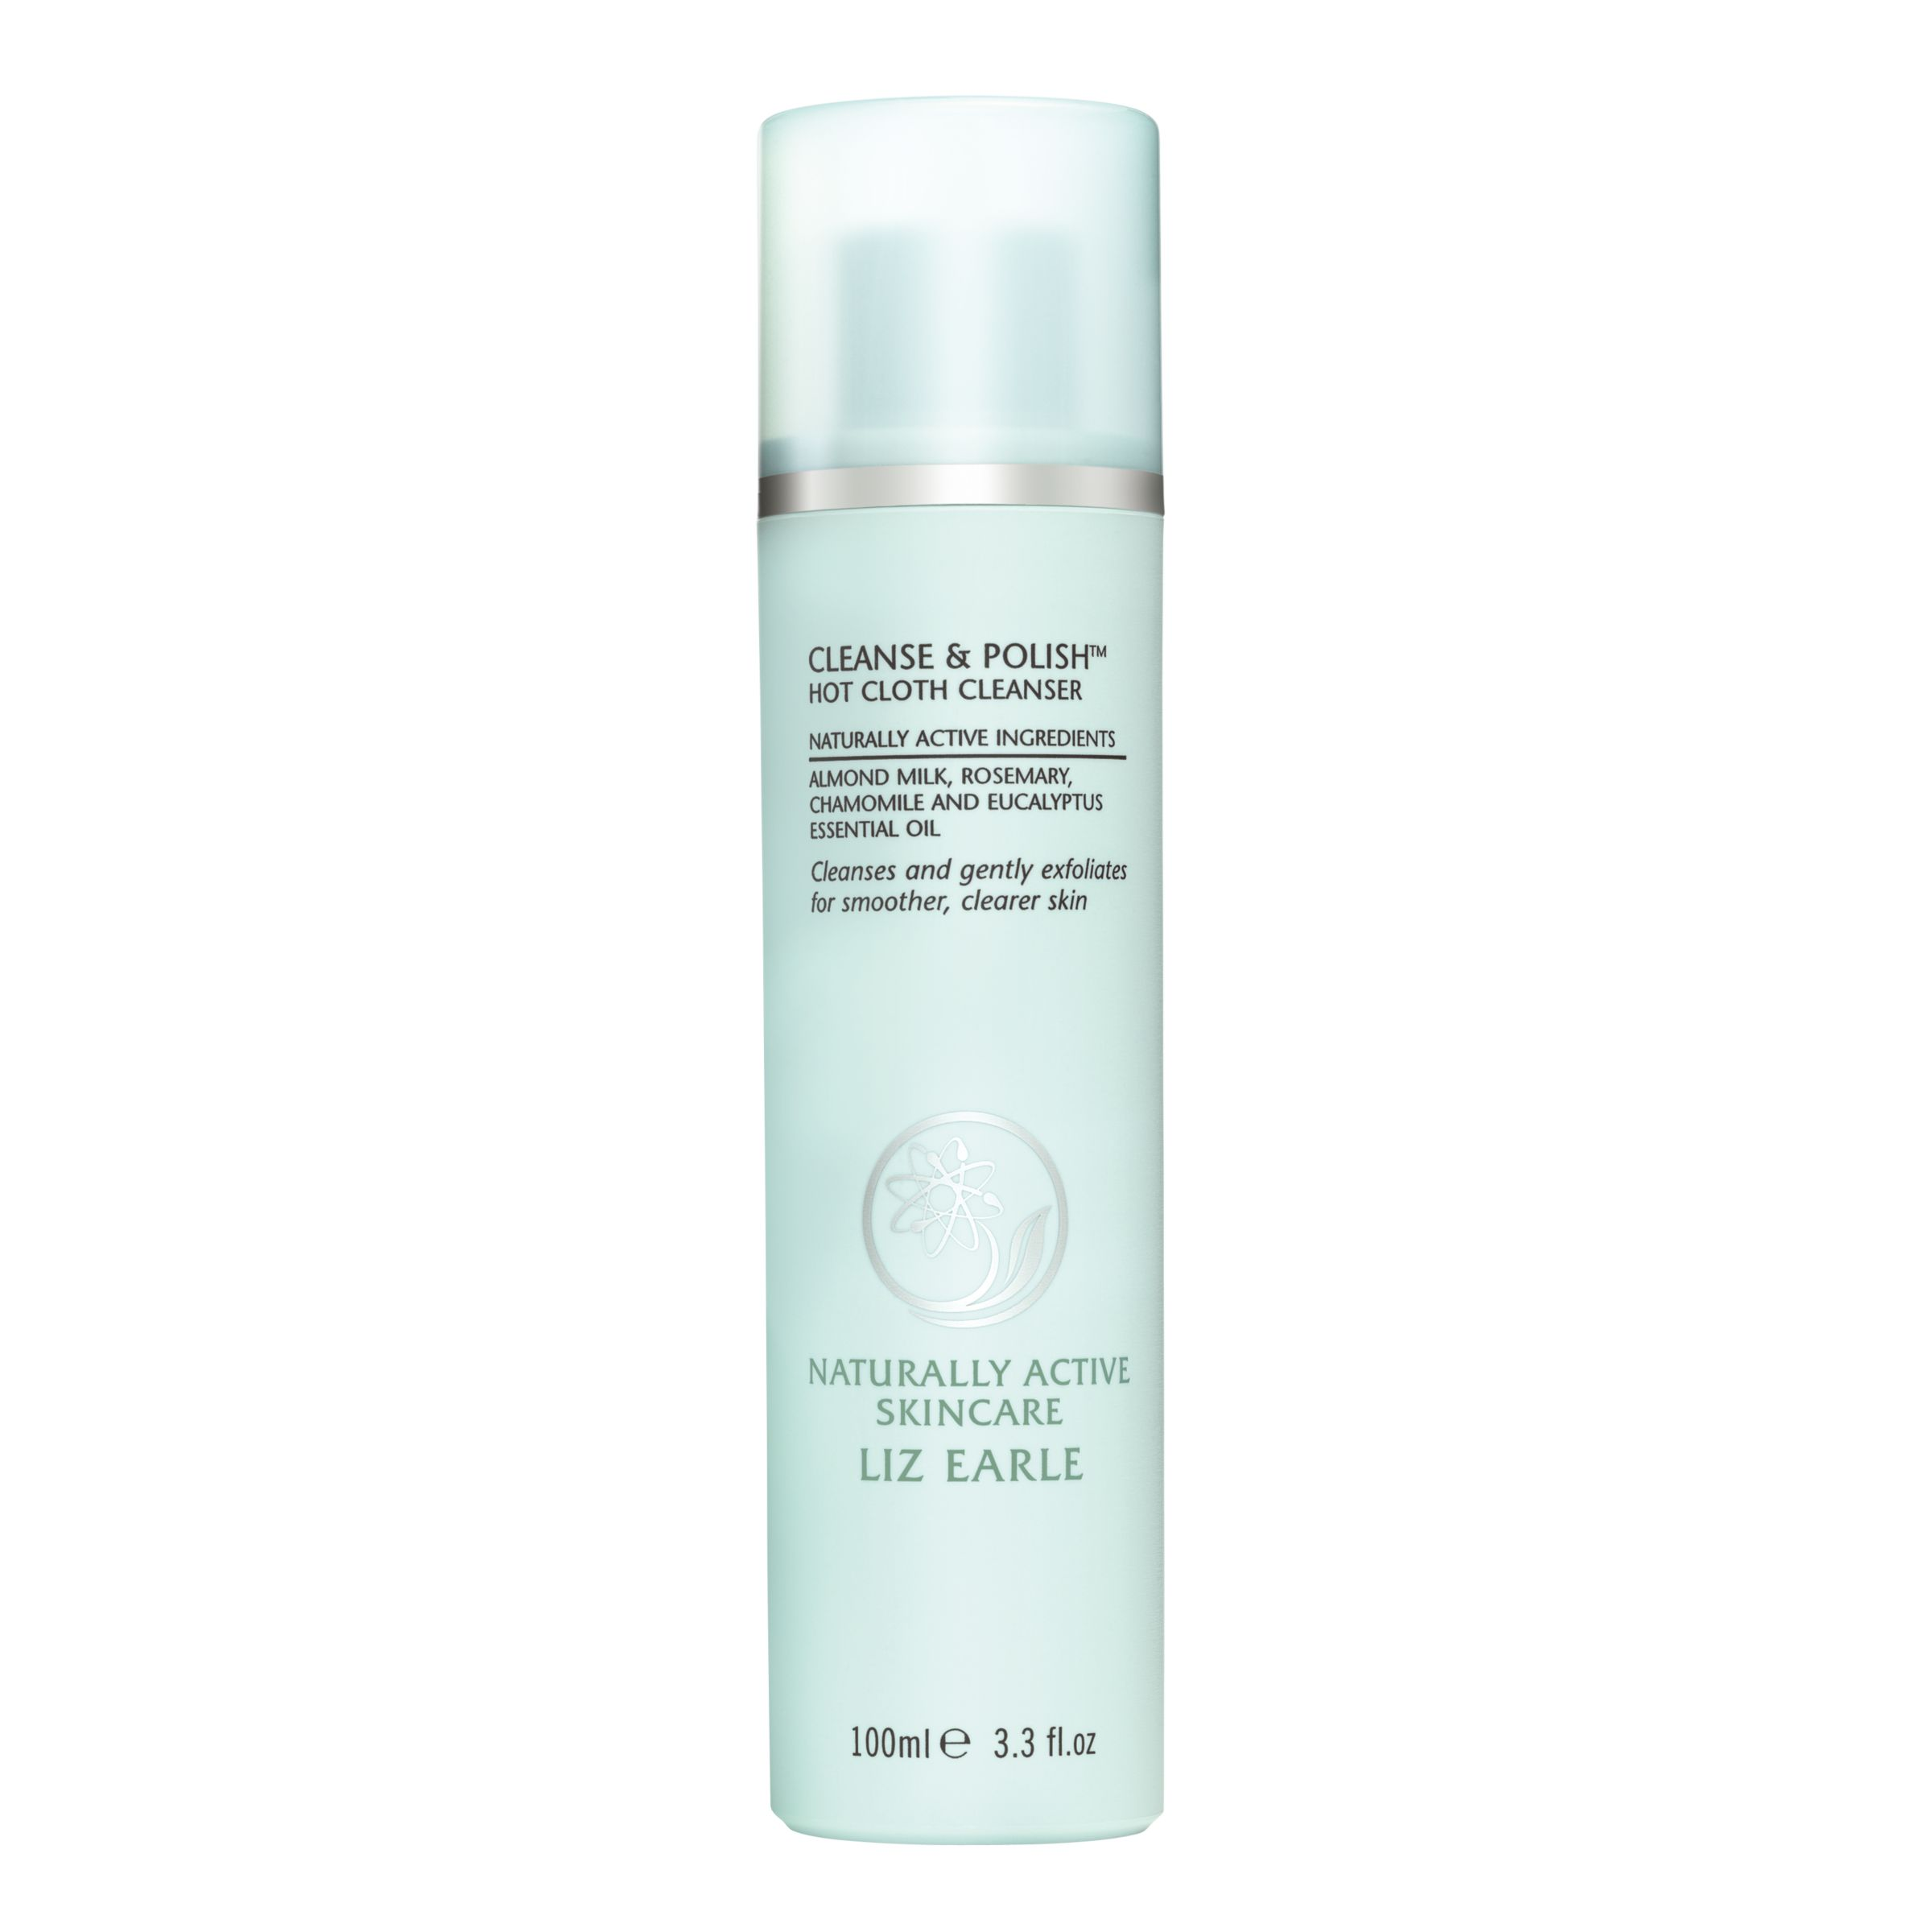 Image result for liz earle cleanse and polish